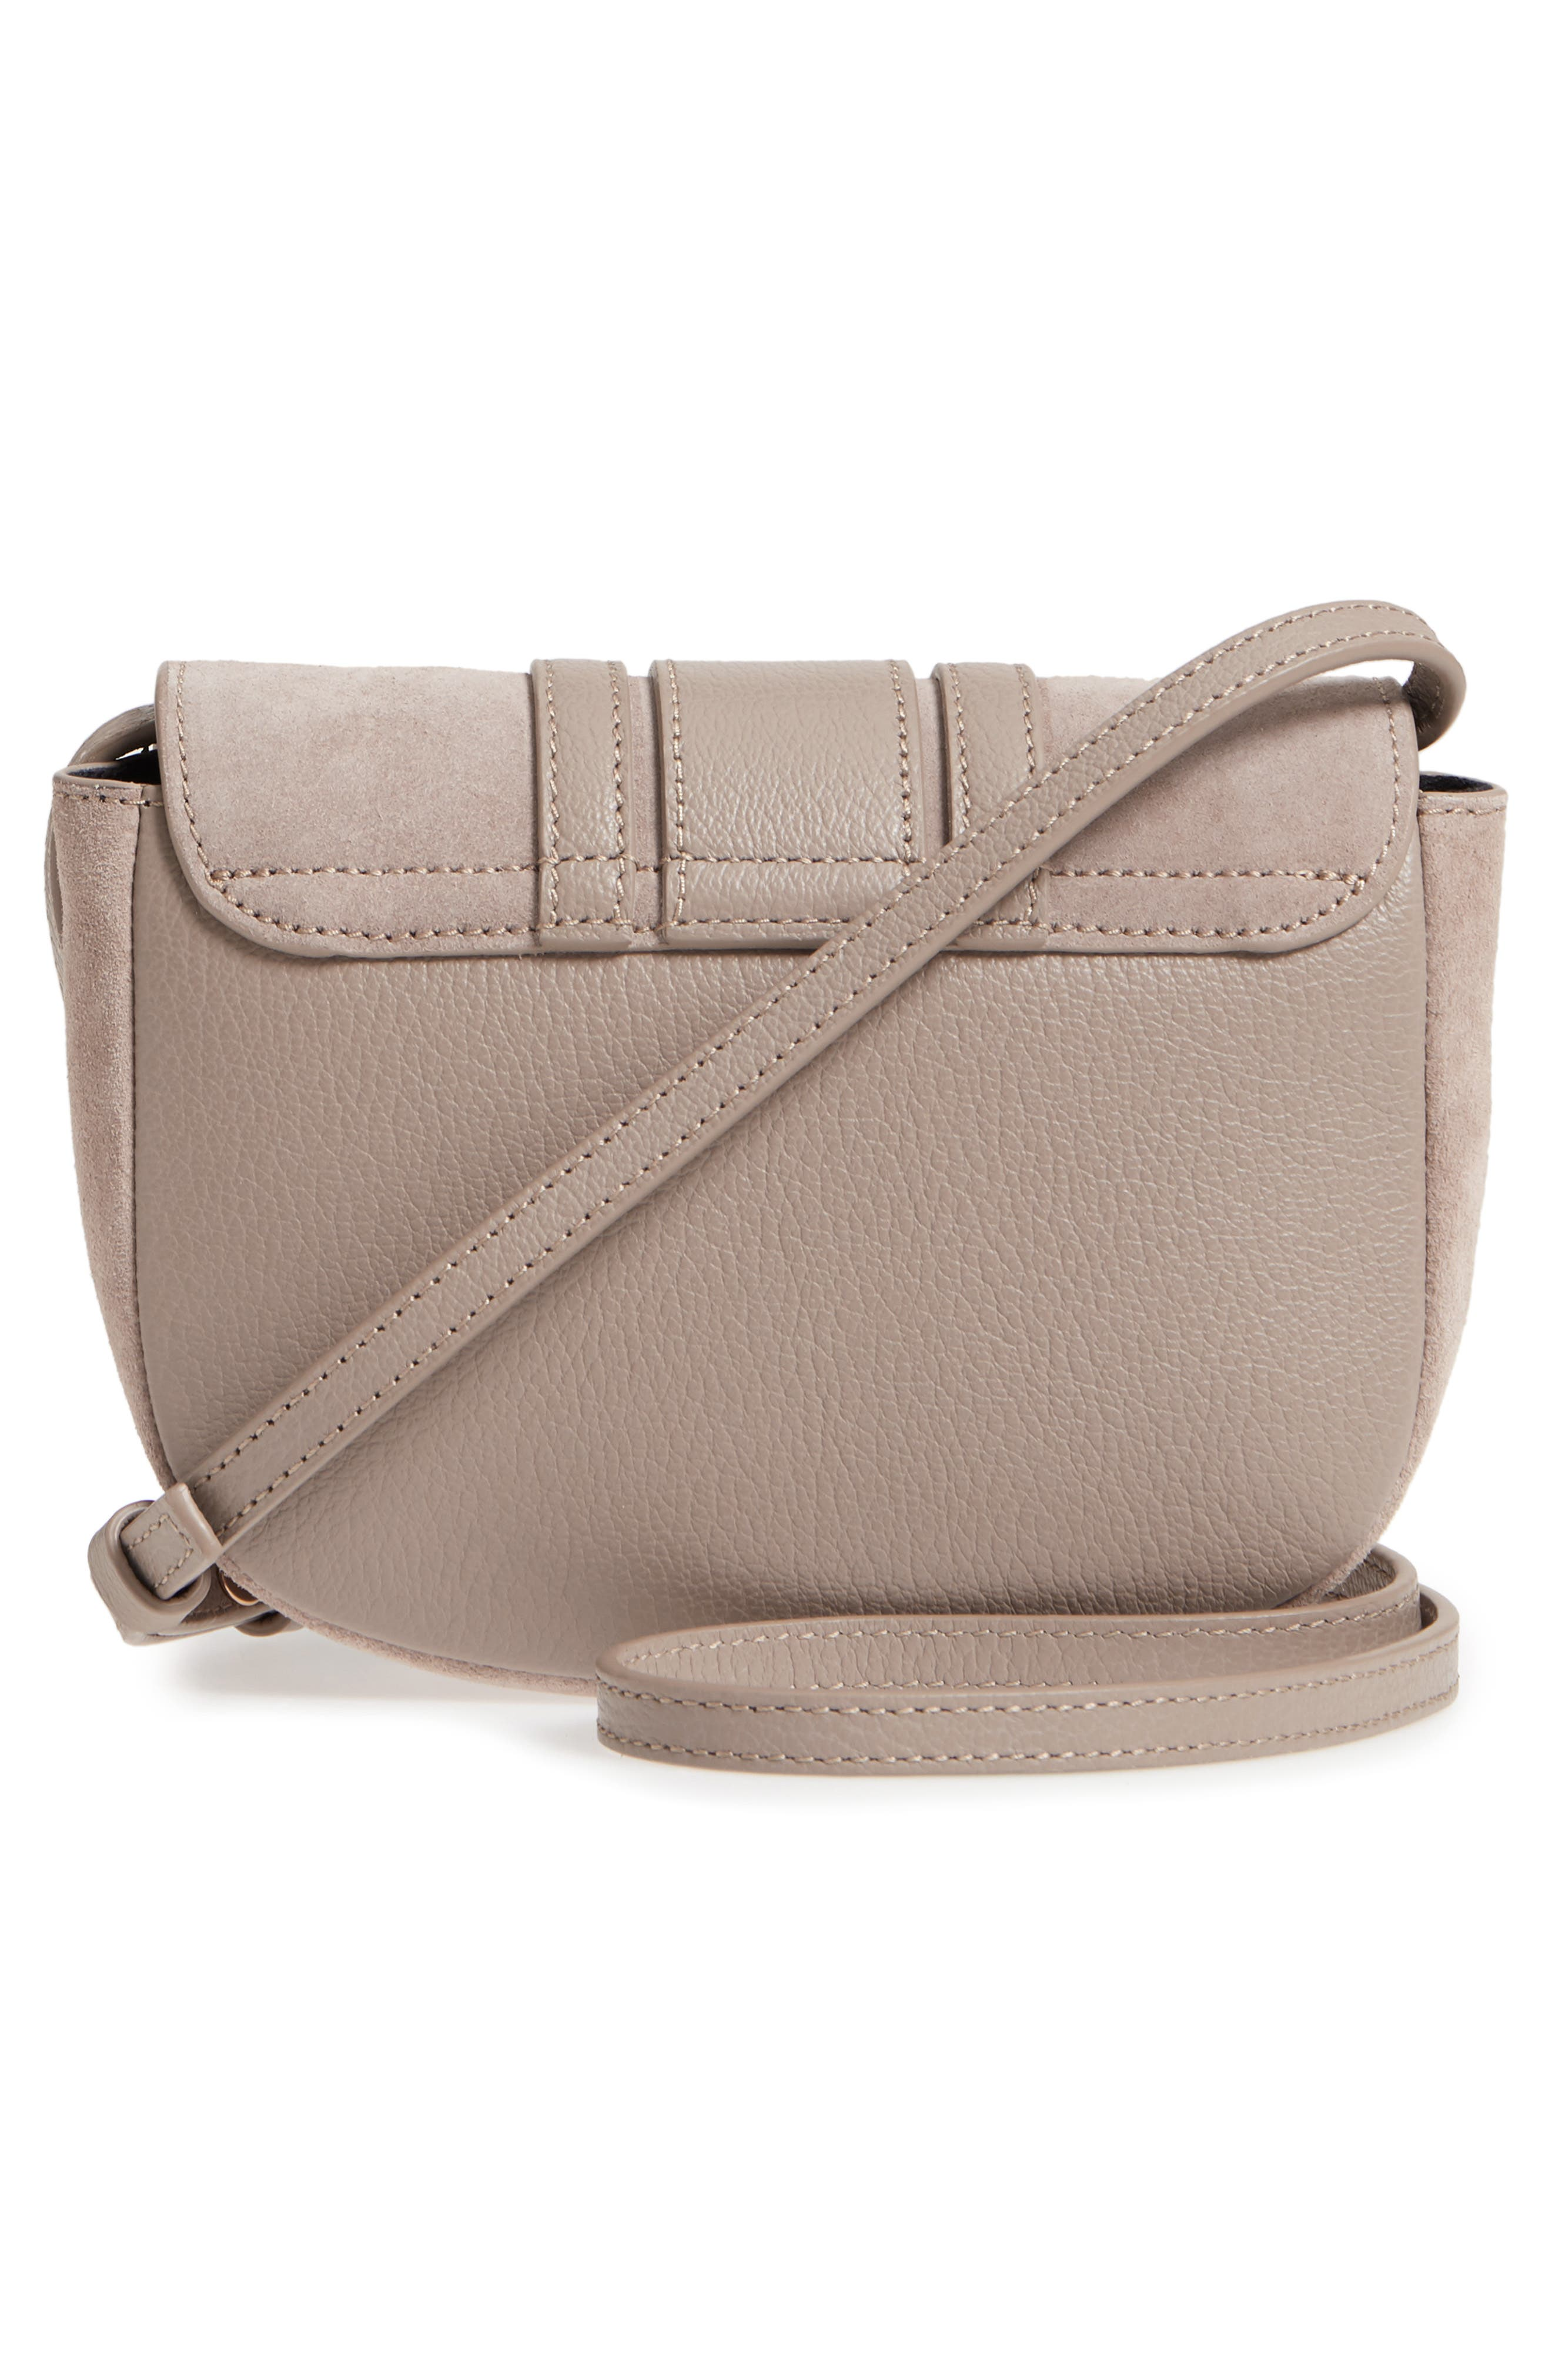 Mini Hana Leather & Suede Crossbody Bag,                             Alternate thumbnail 3, color,                             260